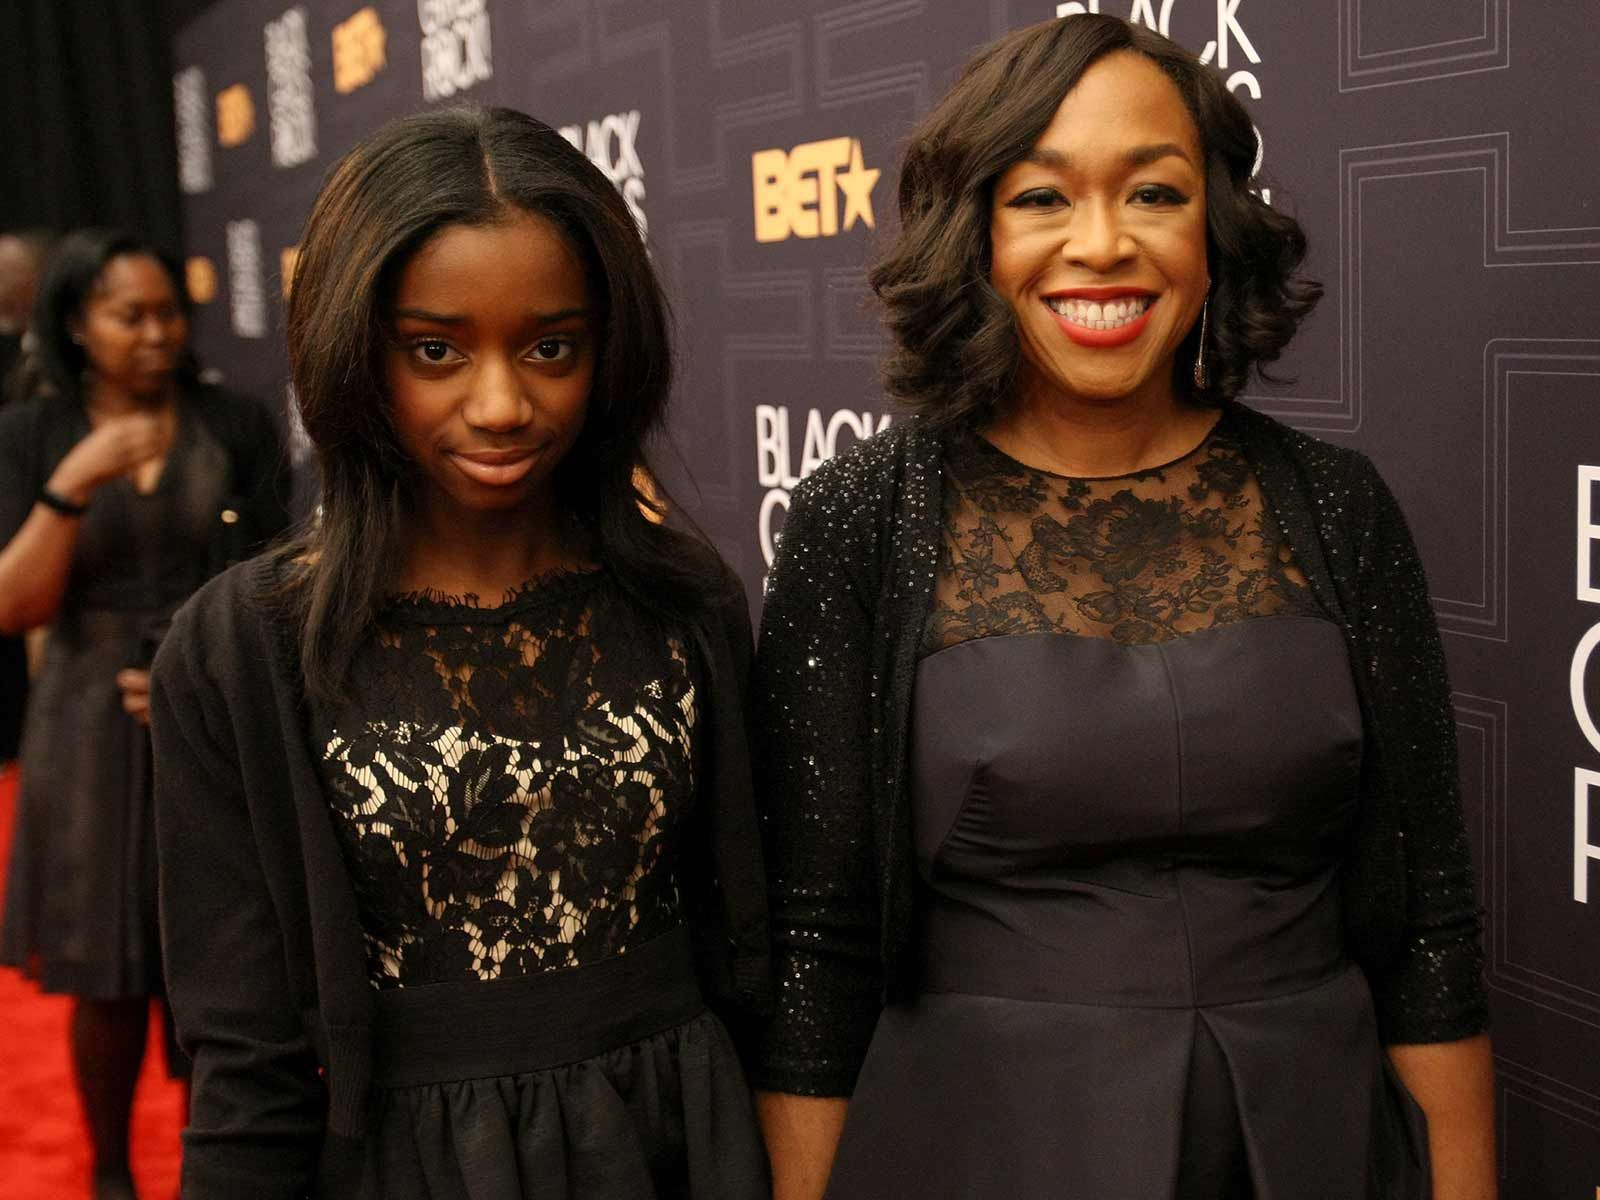 Shonda Rhimes Daughter Was Paid Scale For Scandal Episode